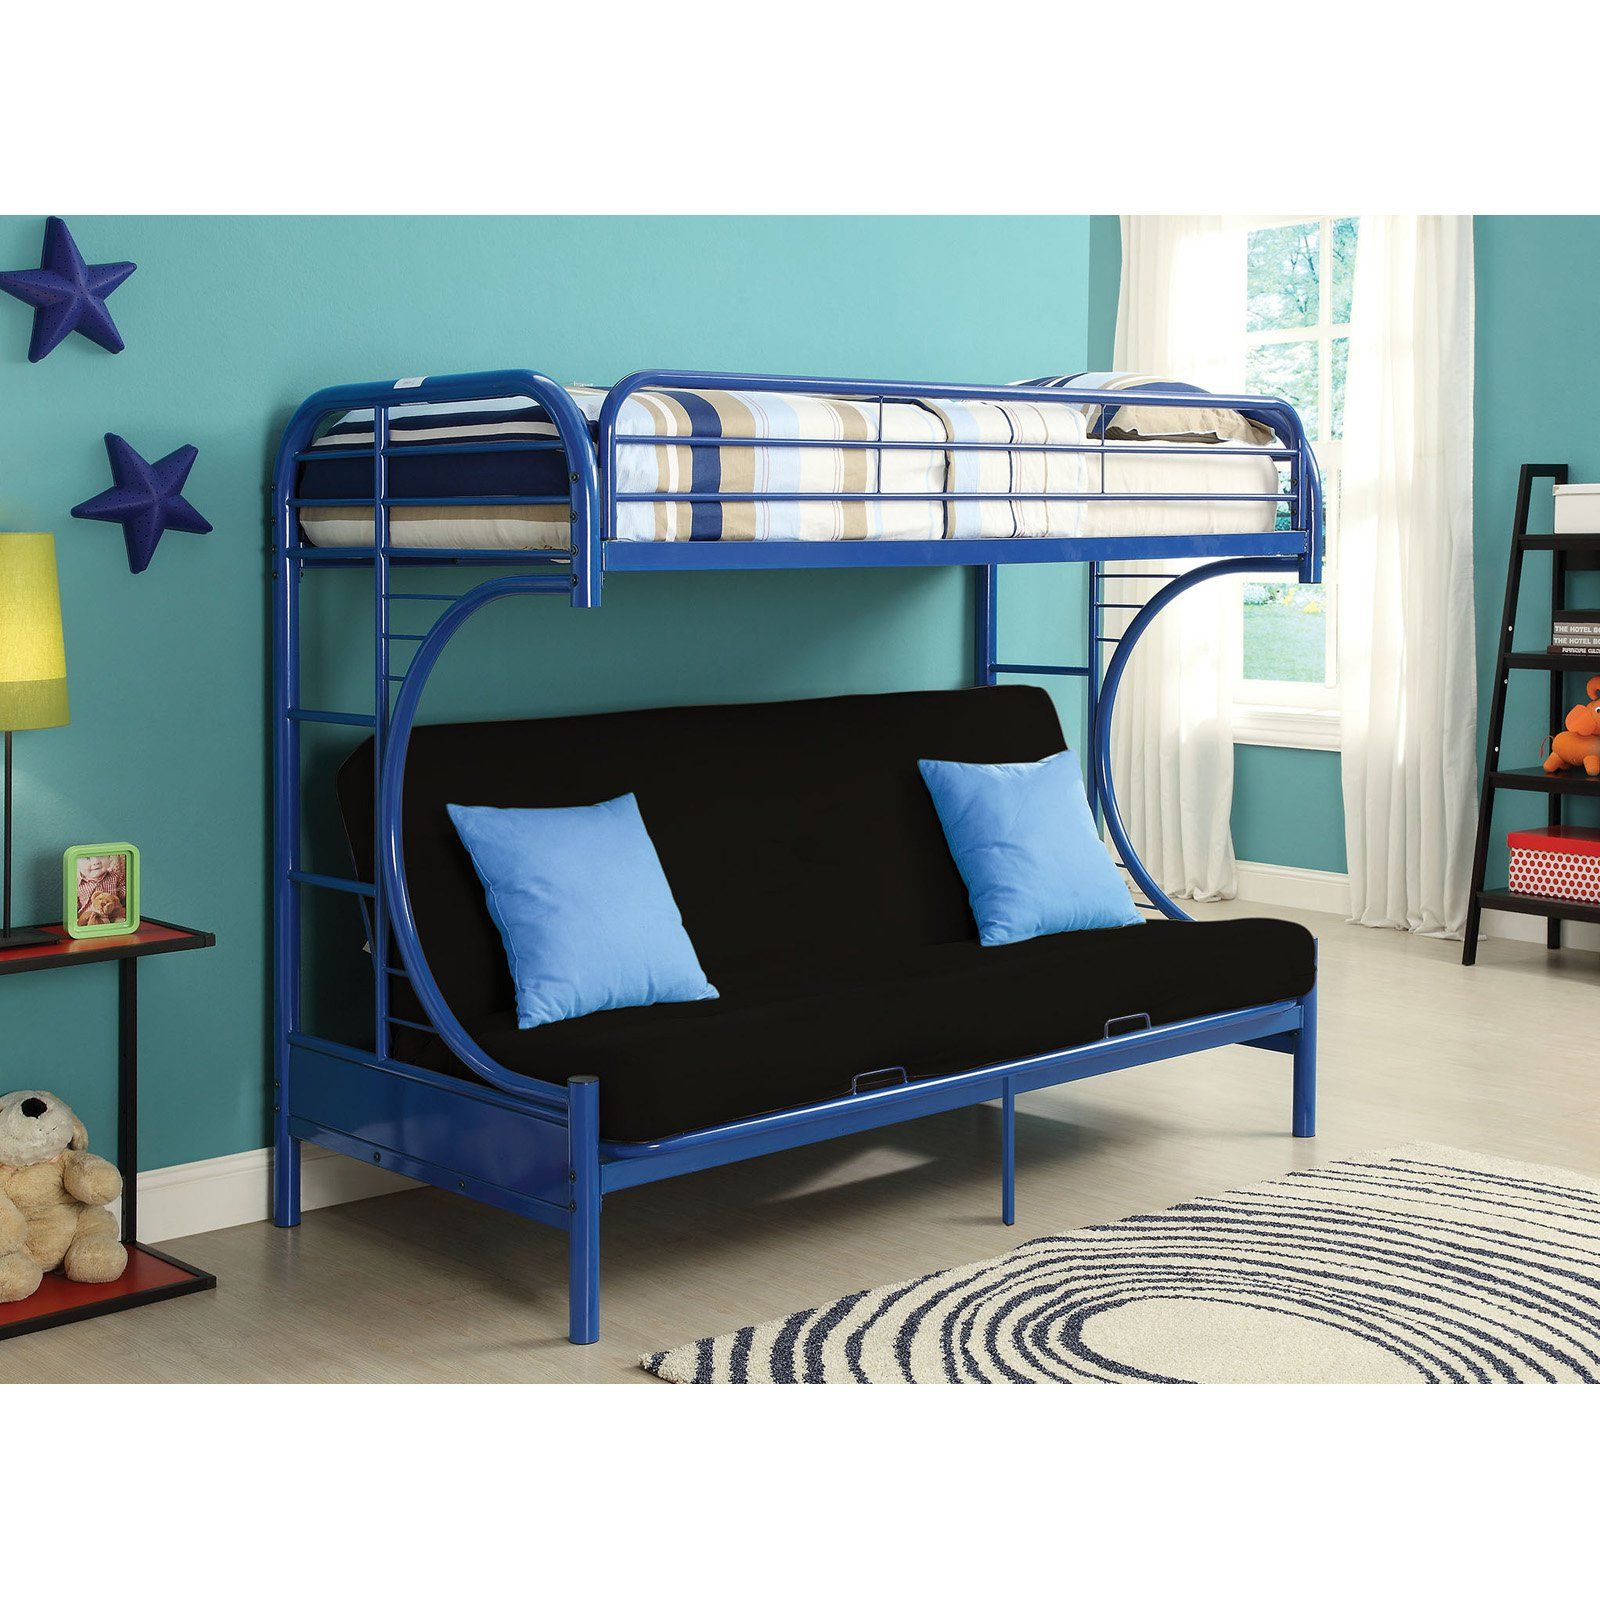 Acme Furniture Eclipse Twin Over Full Futon Bunk Bed Queen Futon